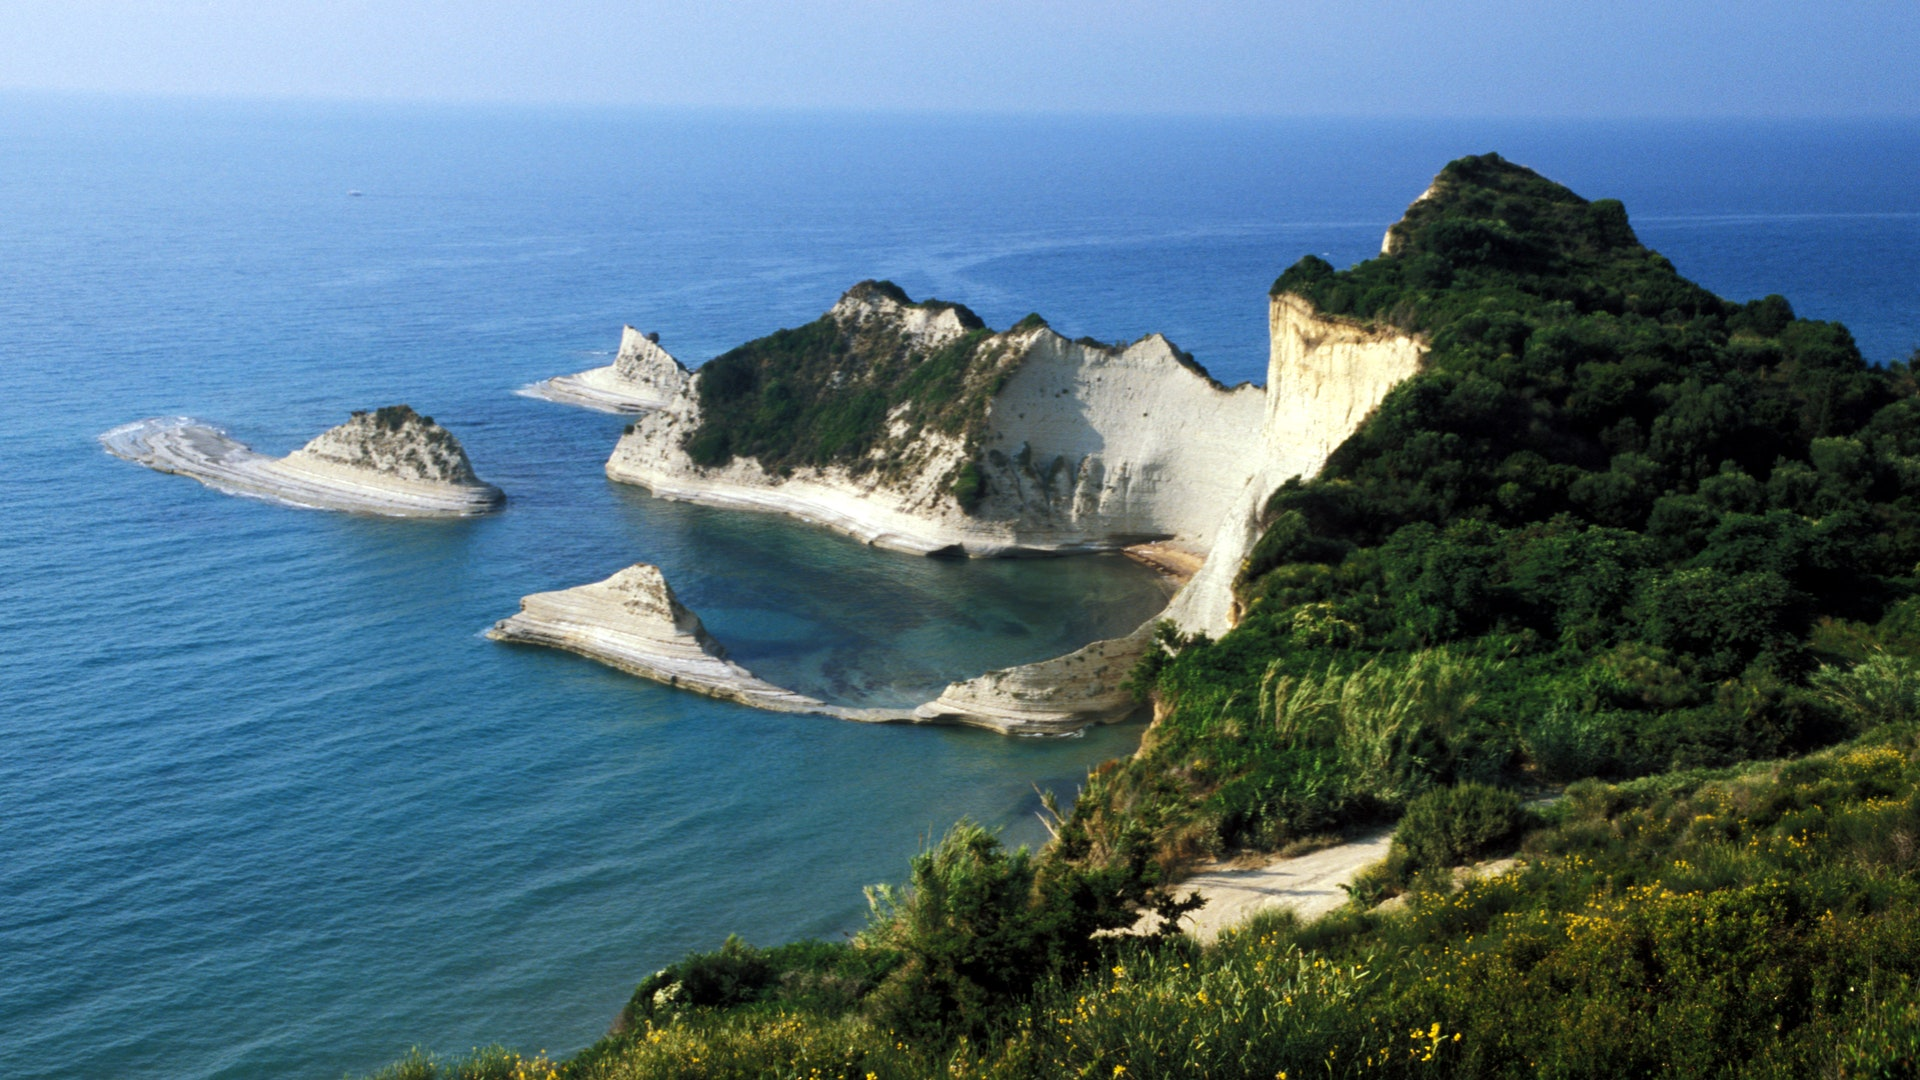 Travel to Corfu: 5 places not to be missed